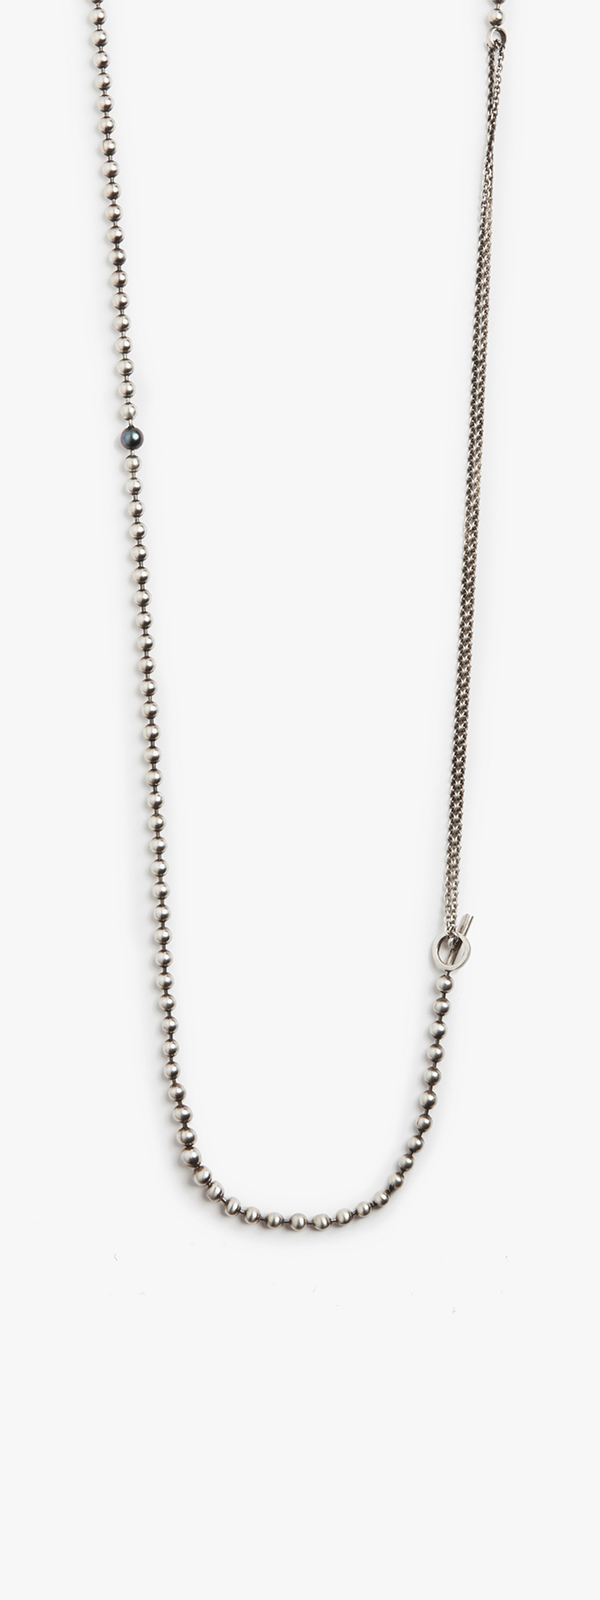 Image of 6mm Black Pearl to Sterling Silver Ball Chain / Micro Cable Necklace